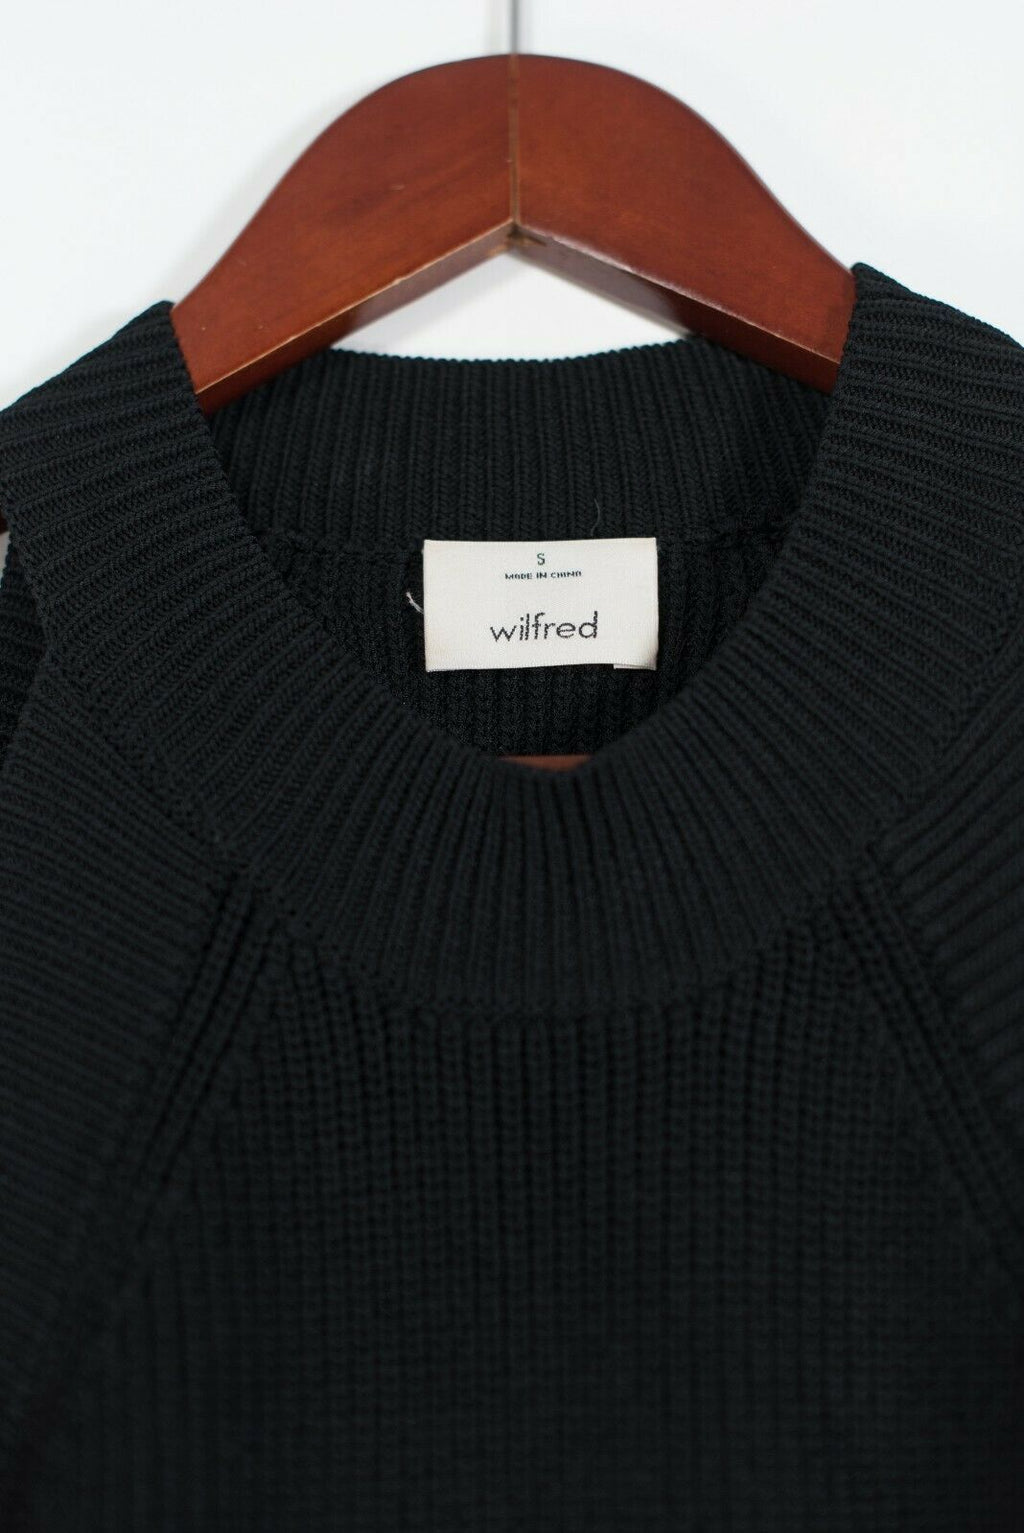 Aritzia Wilfred Women's Small Black Crevier Tank Top Knit Sweater Cropped Shirt